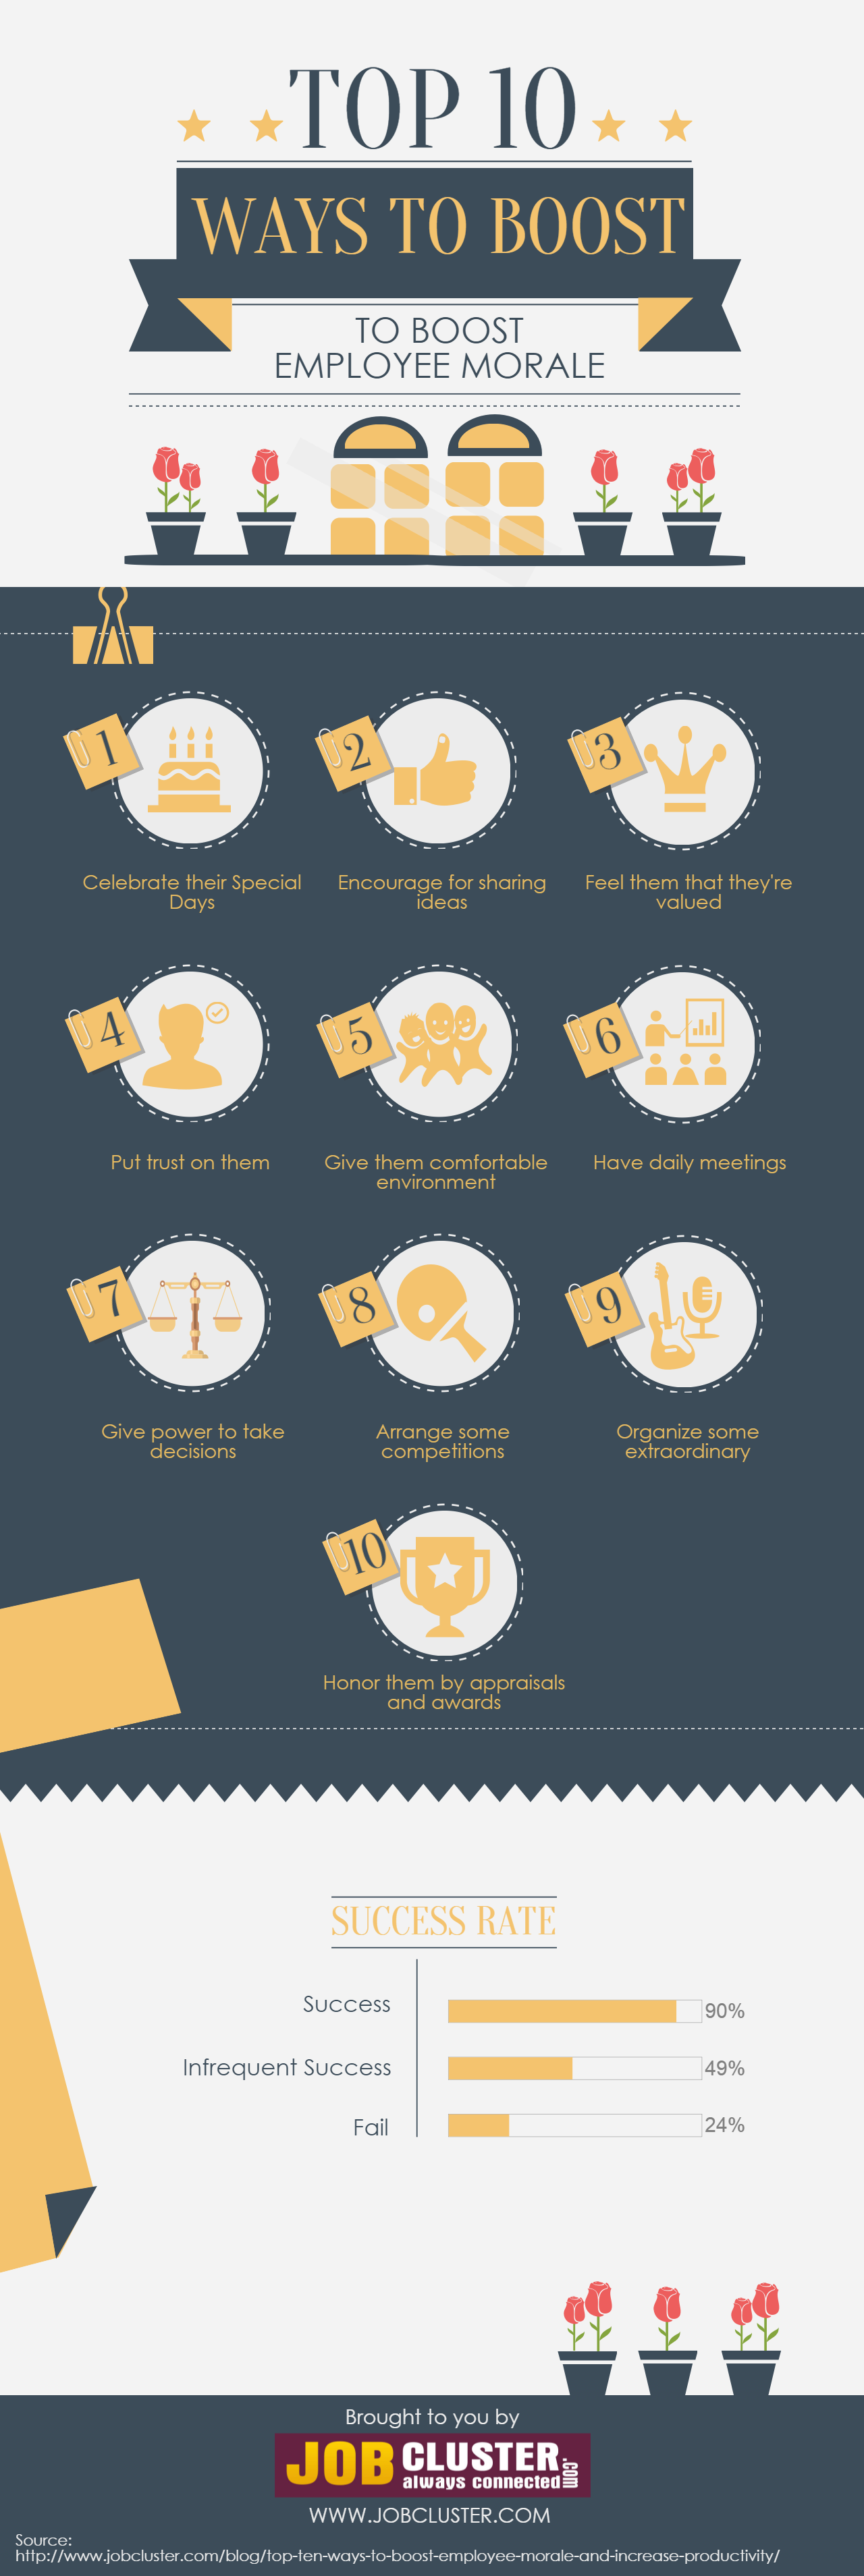 10 Ways to Boost Employee Morale- Infographic